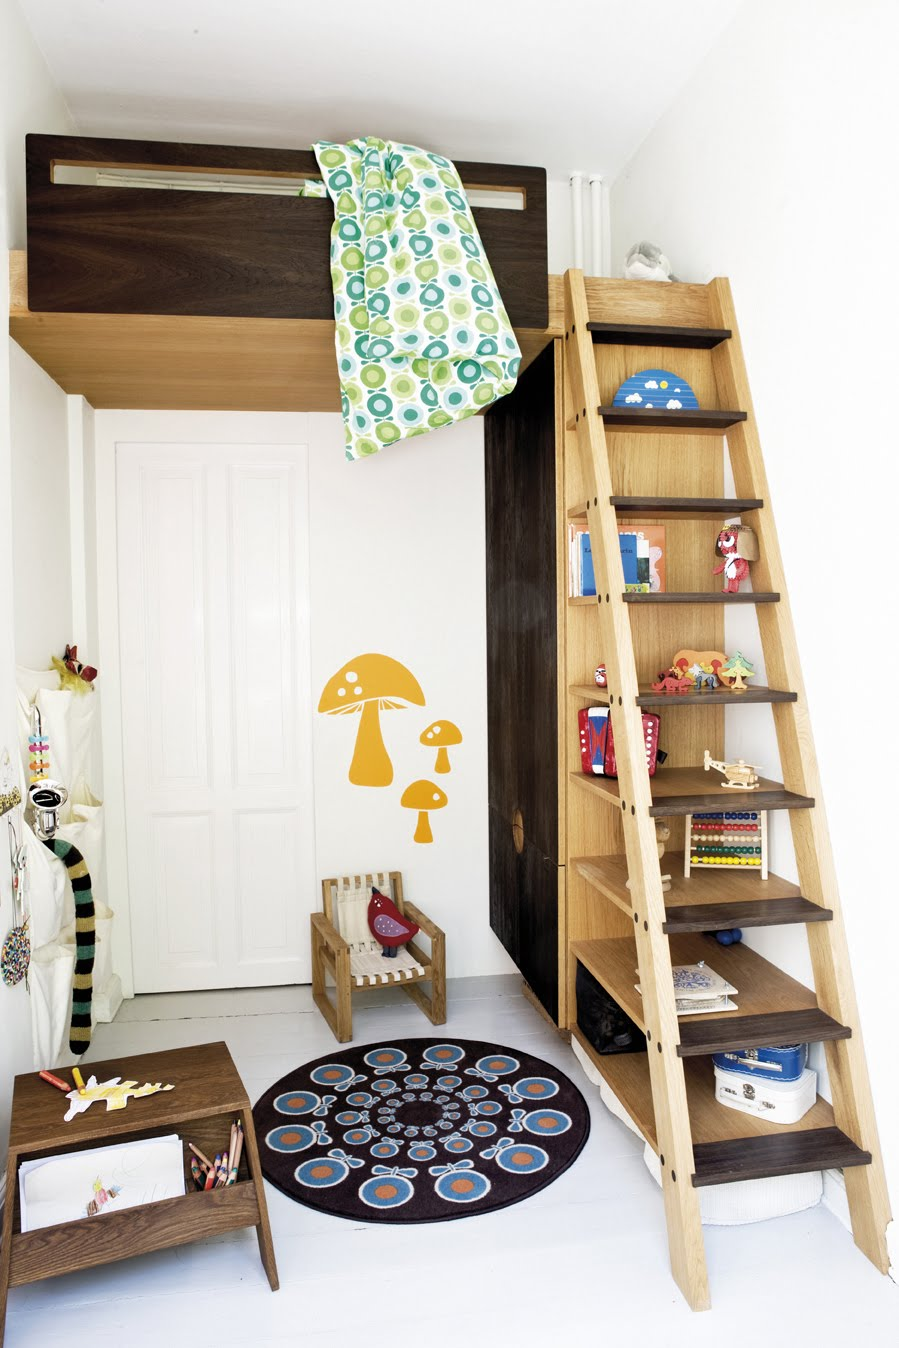 attic shelf ideas - Lite barnerom med lekker sengehems Foreldremanualen